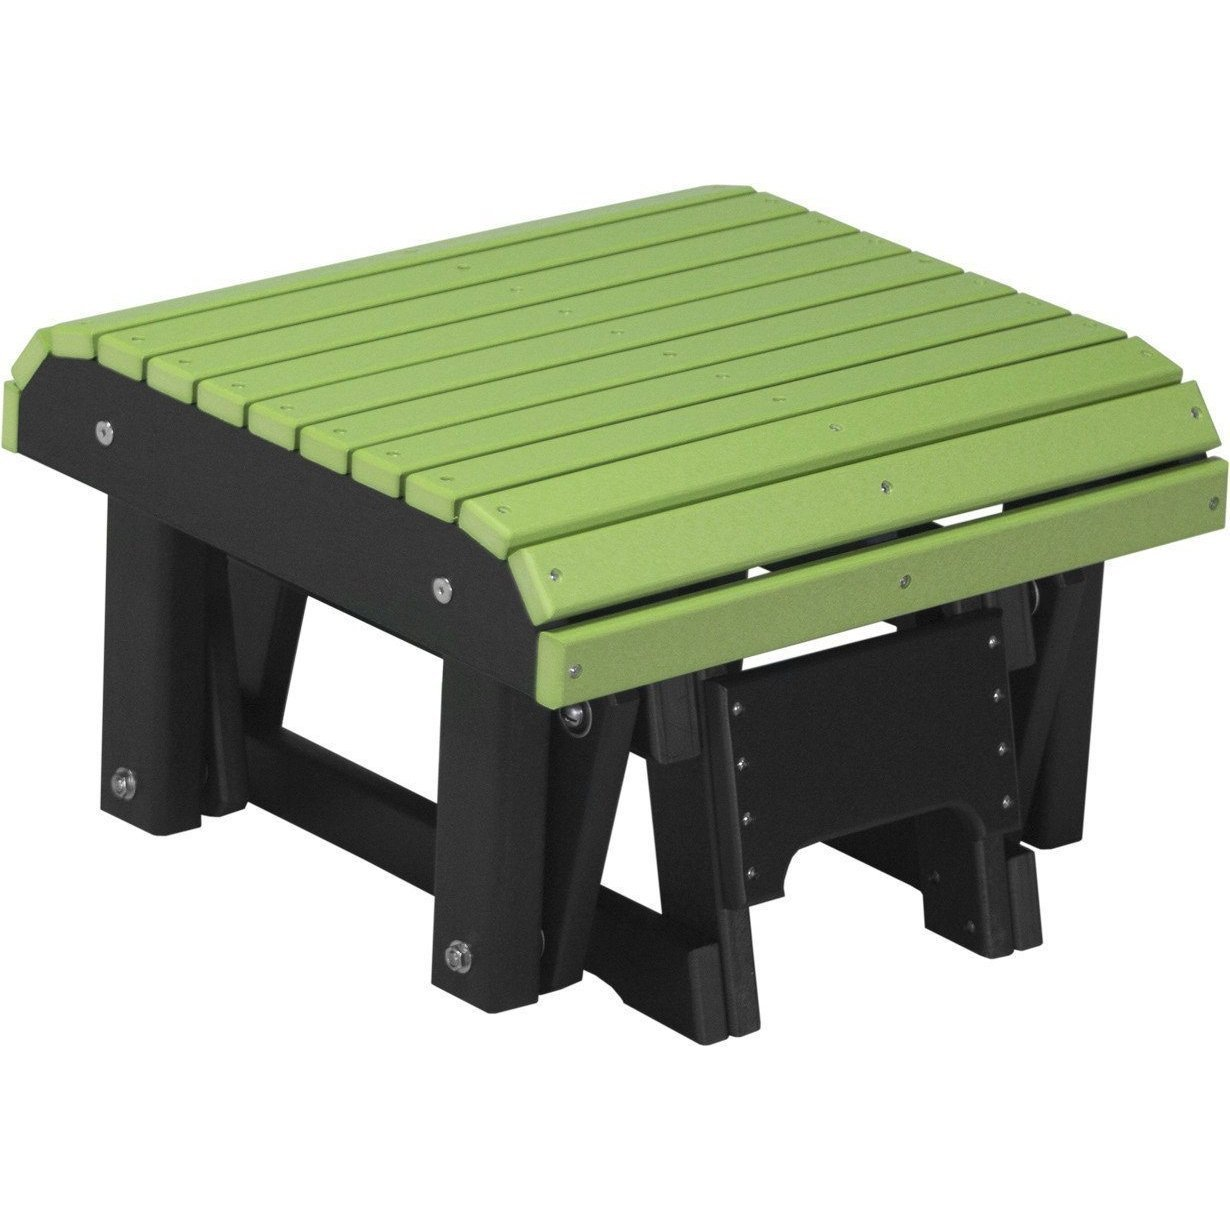 LuxCraft PolyTuf Outdoor Glider Footrest Lime Green & Black